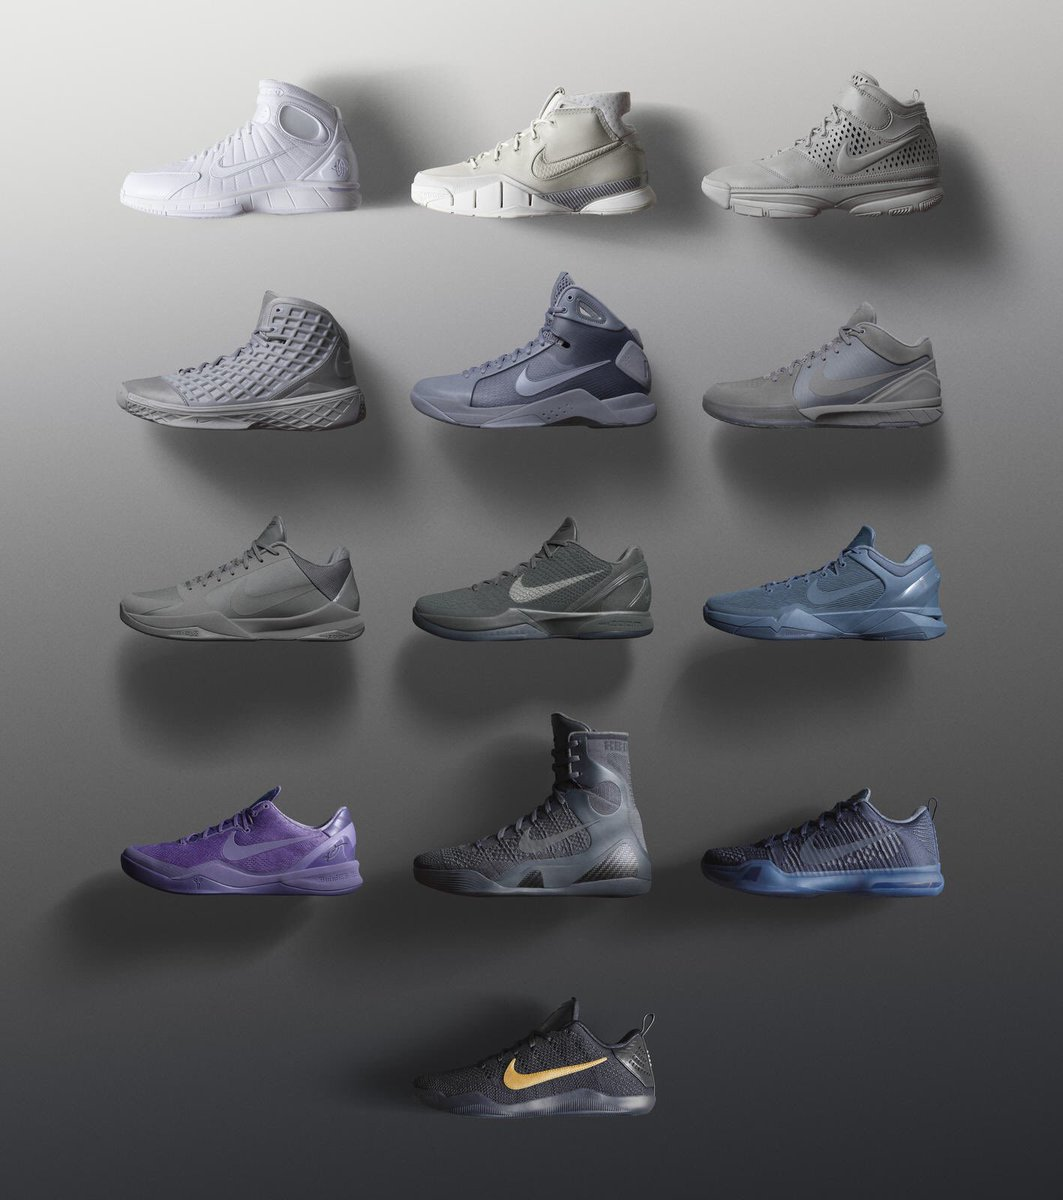 Black Mamba Pack fades from white to black as Kobe's final game nears.  Rollout begins w/ Huarache 2K4 on 3/22 https://t.co/yBQ1tPAgg7